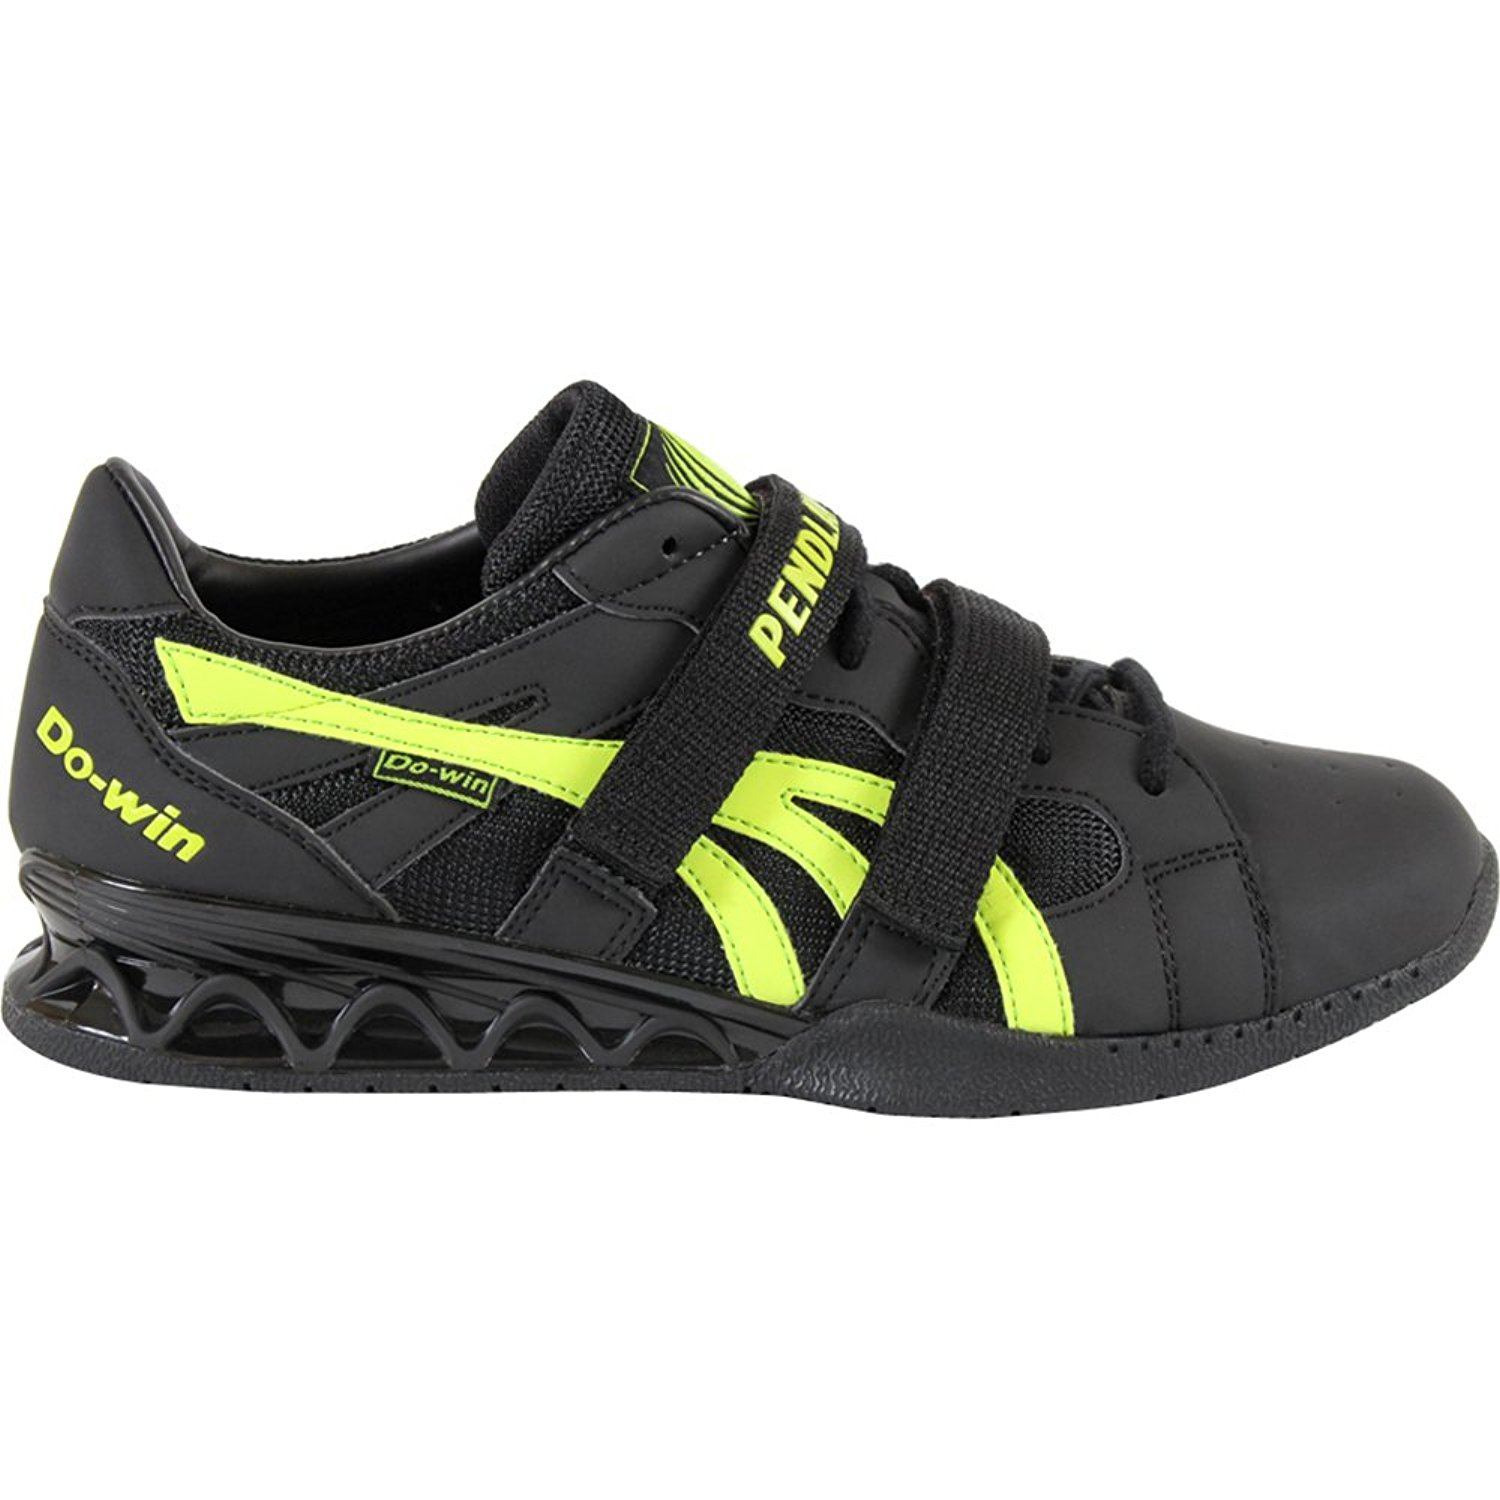 21fbafc3a3ae8b Get Quotations · Pendlay Men s 14PBlack - Weightlifting Shoes